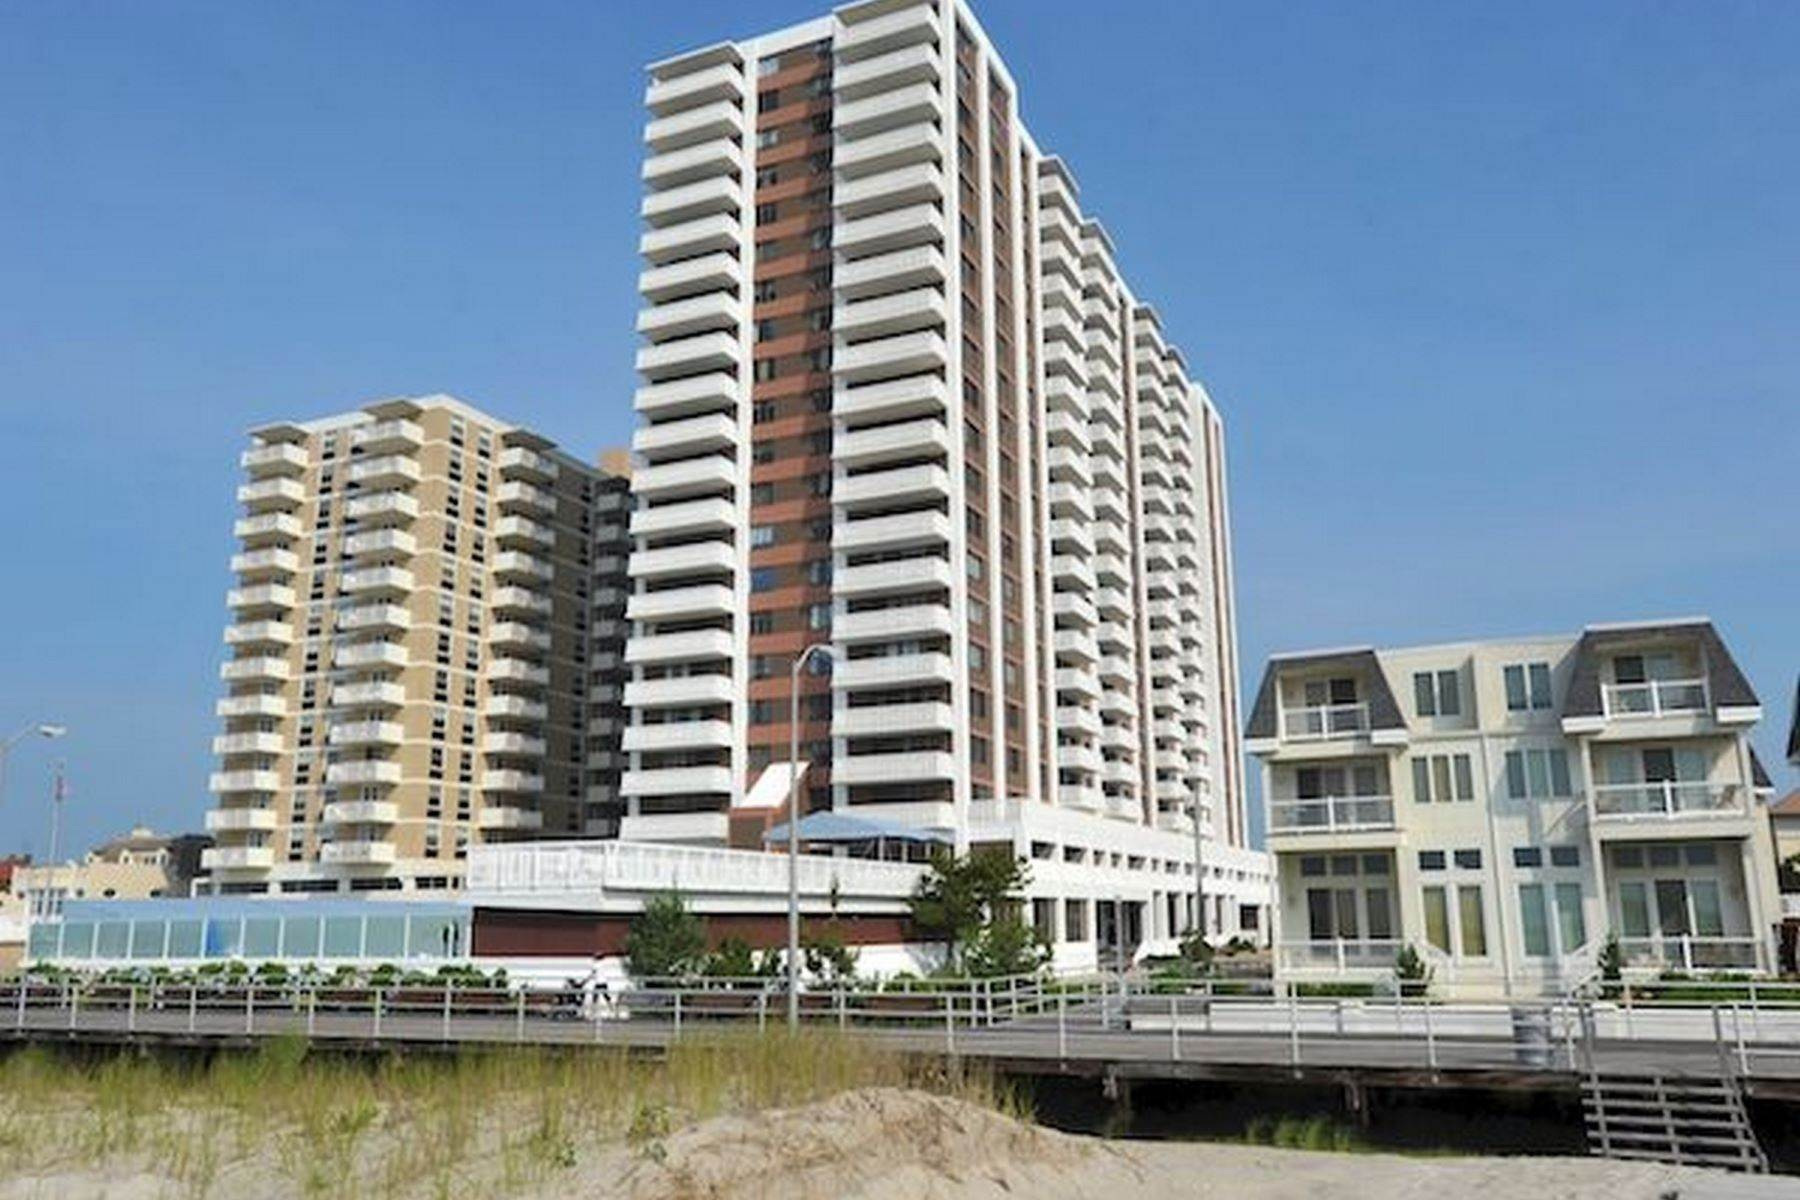 Condominiums for Sale at 100 S Berkely #21A 100 S Berkley Ave #21A Atlantic City, New Jersey 08401 United States